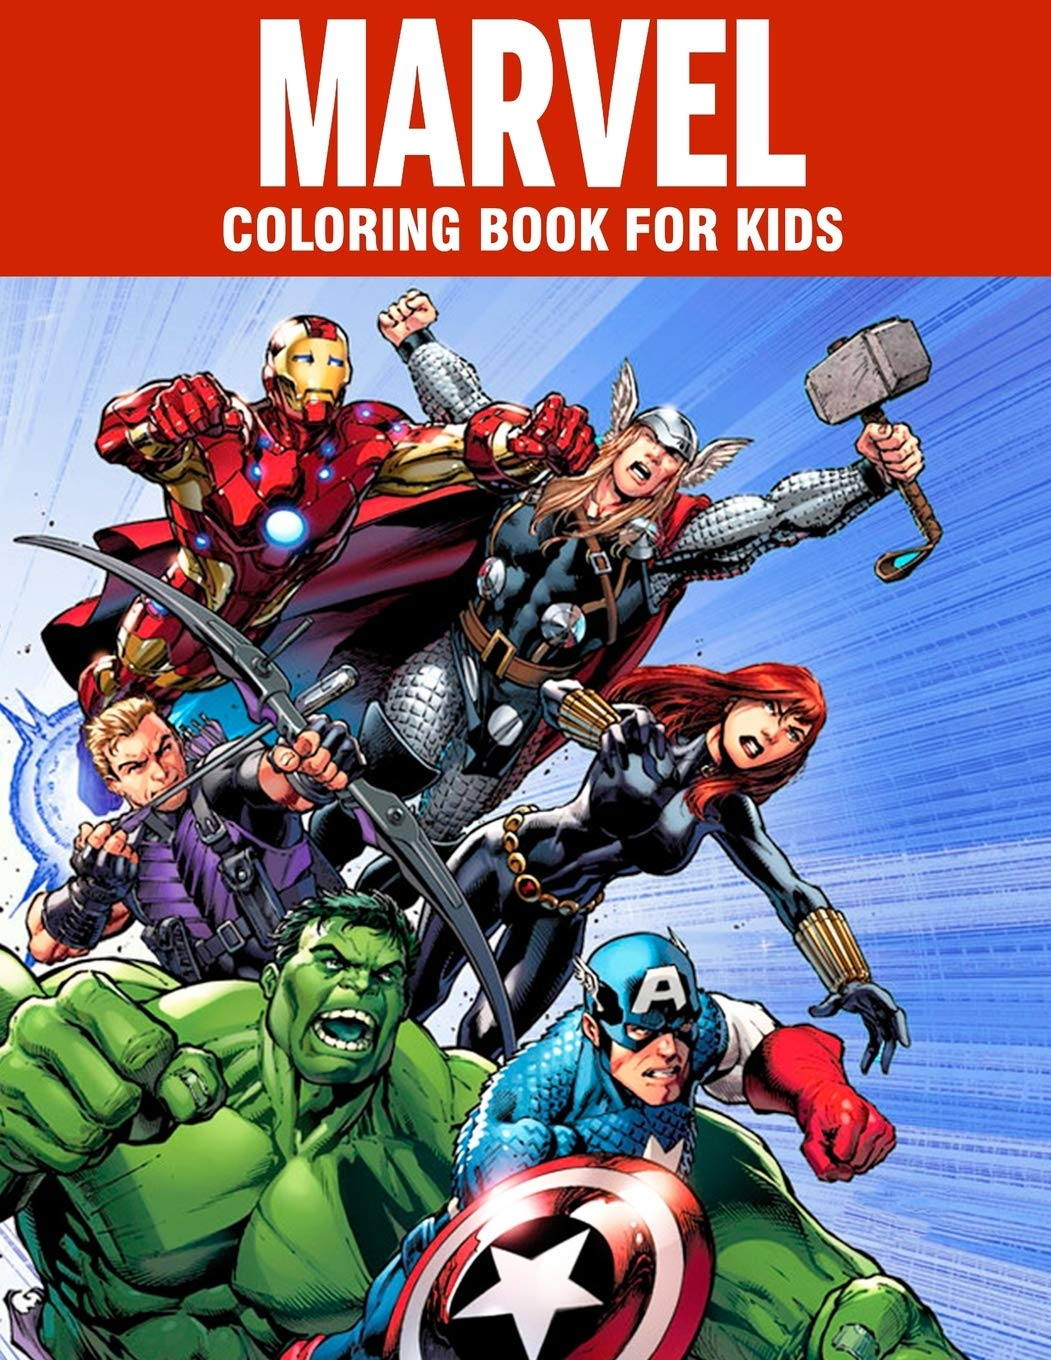 Buy Marvel Coloring Book For Kids Super Heroes Illustrations For Boys And Girls Age 3 10 Avangers Iron Man Thor Hulk Captain America Black Panther Spider Man Doctor Strange Thanos Infinity War Book Online